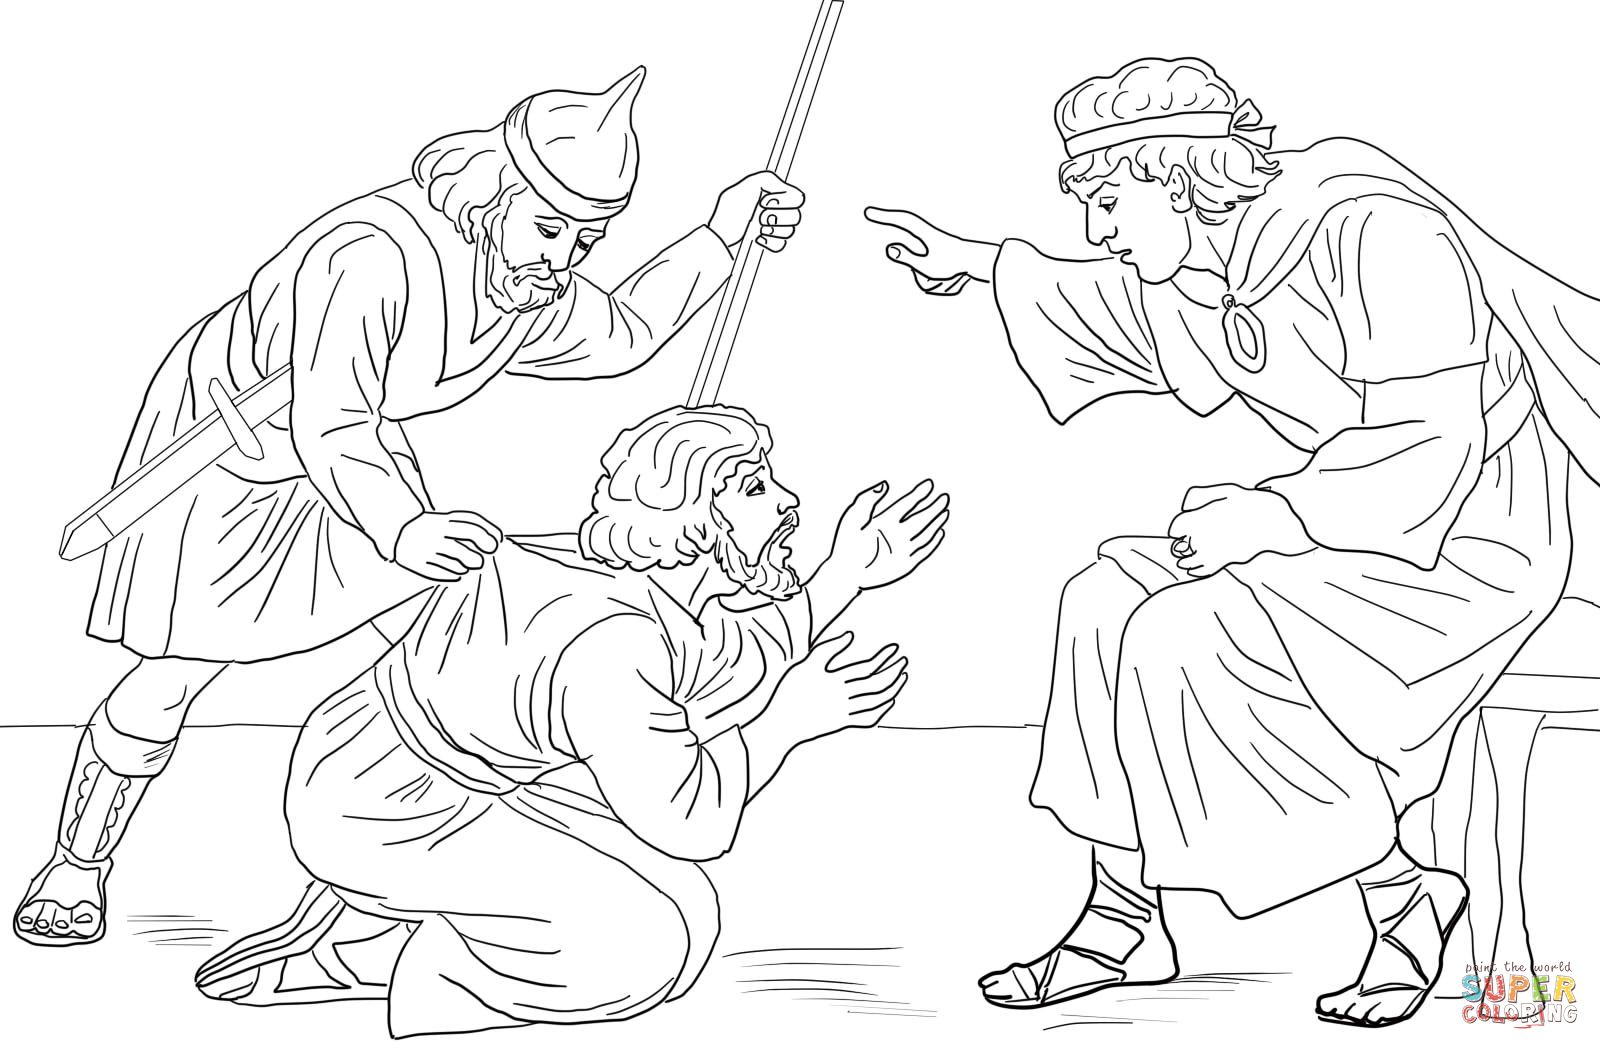 Coloring page for parable of the unmerciful servant (1600